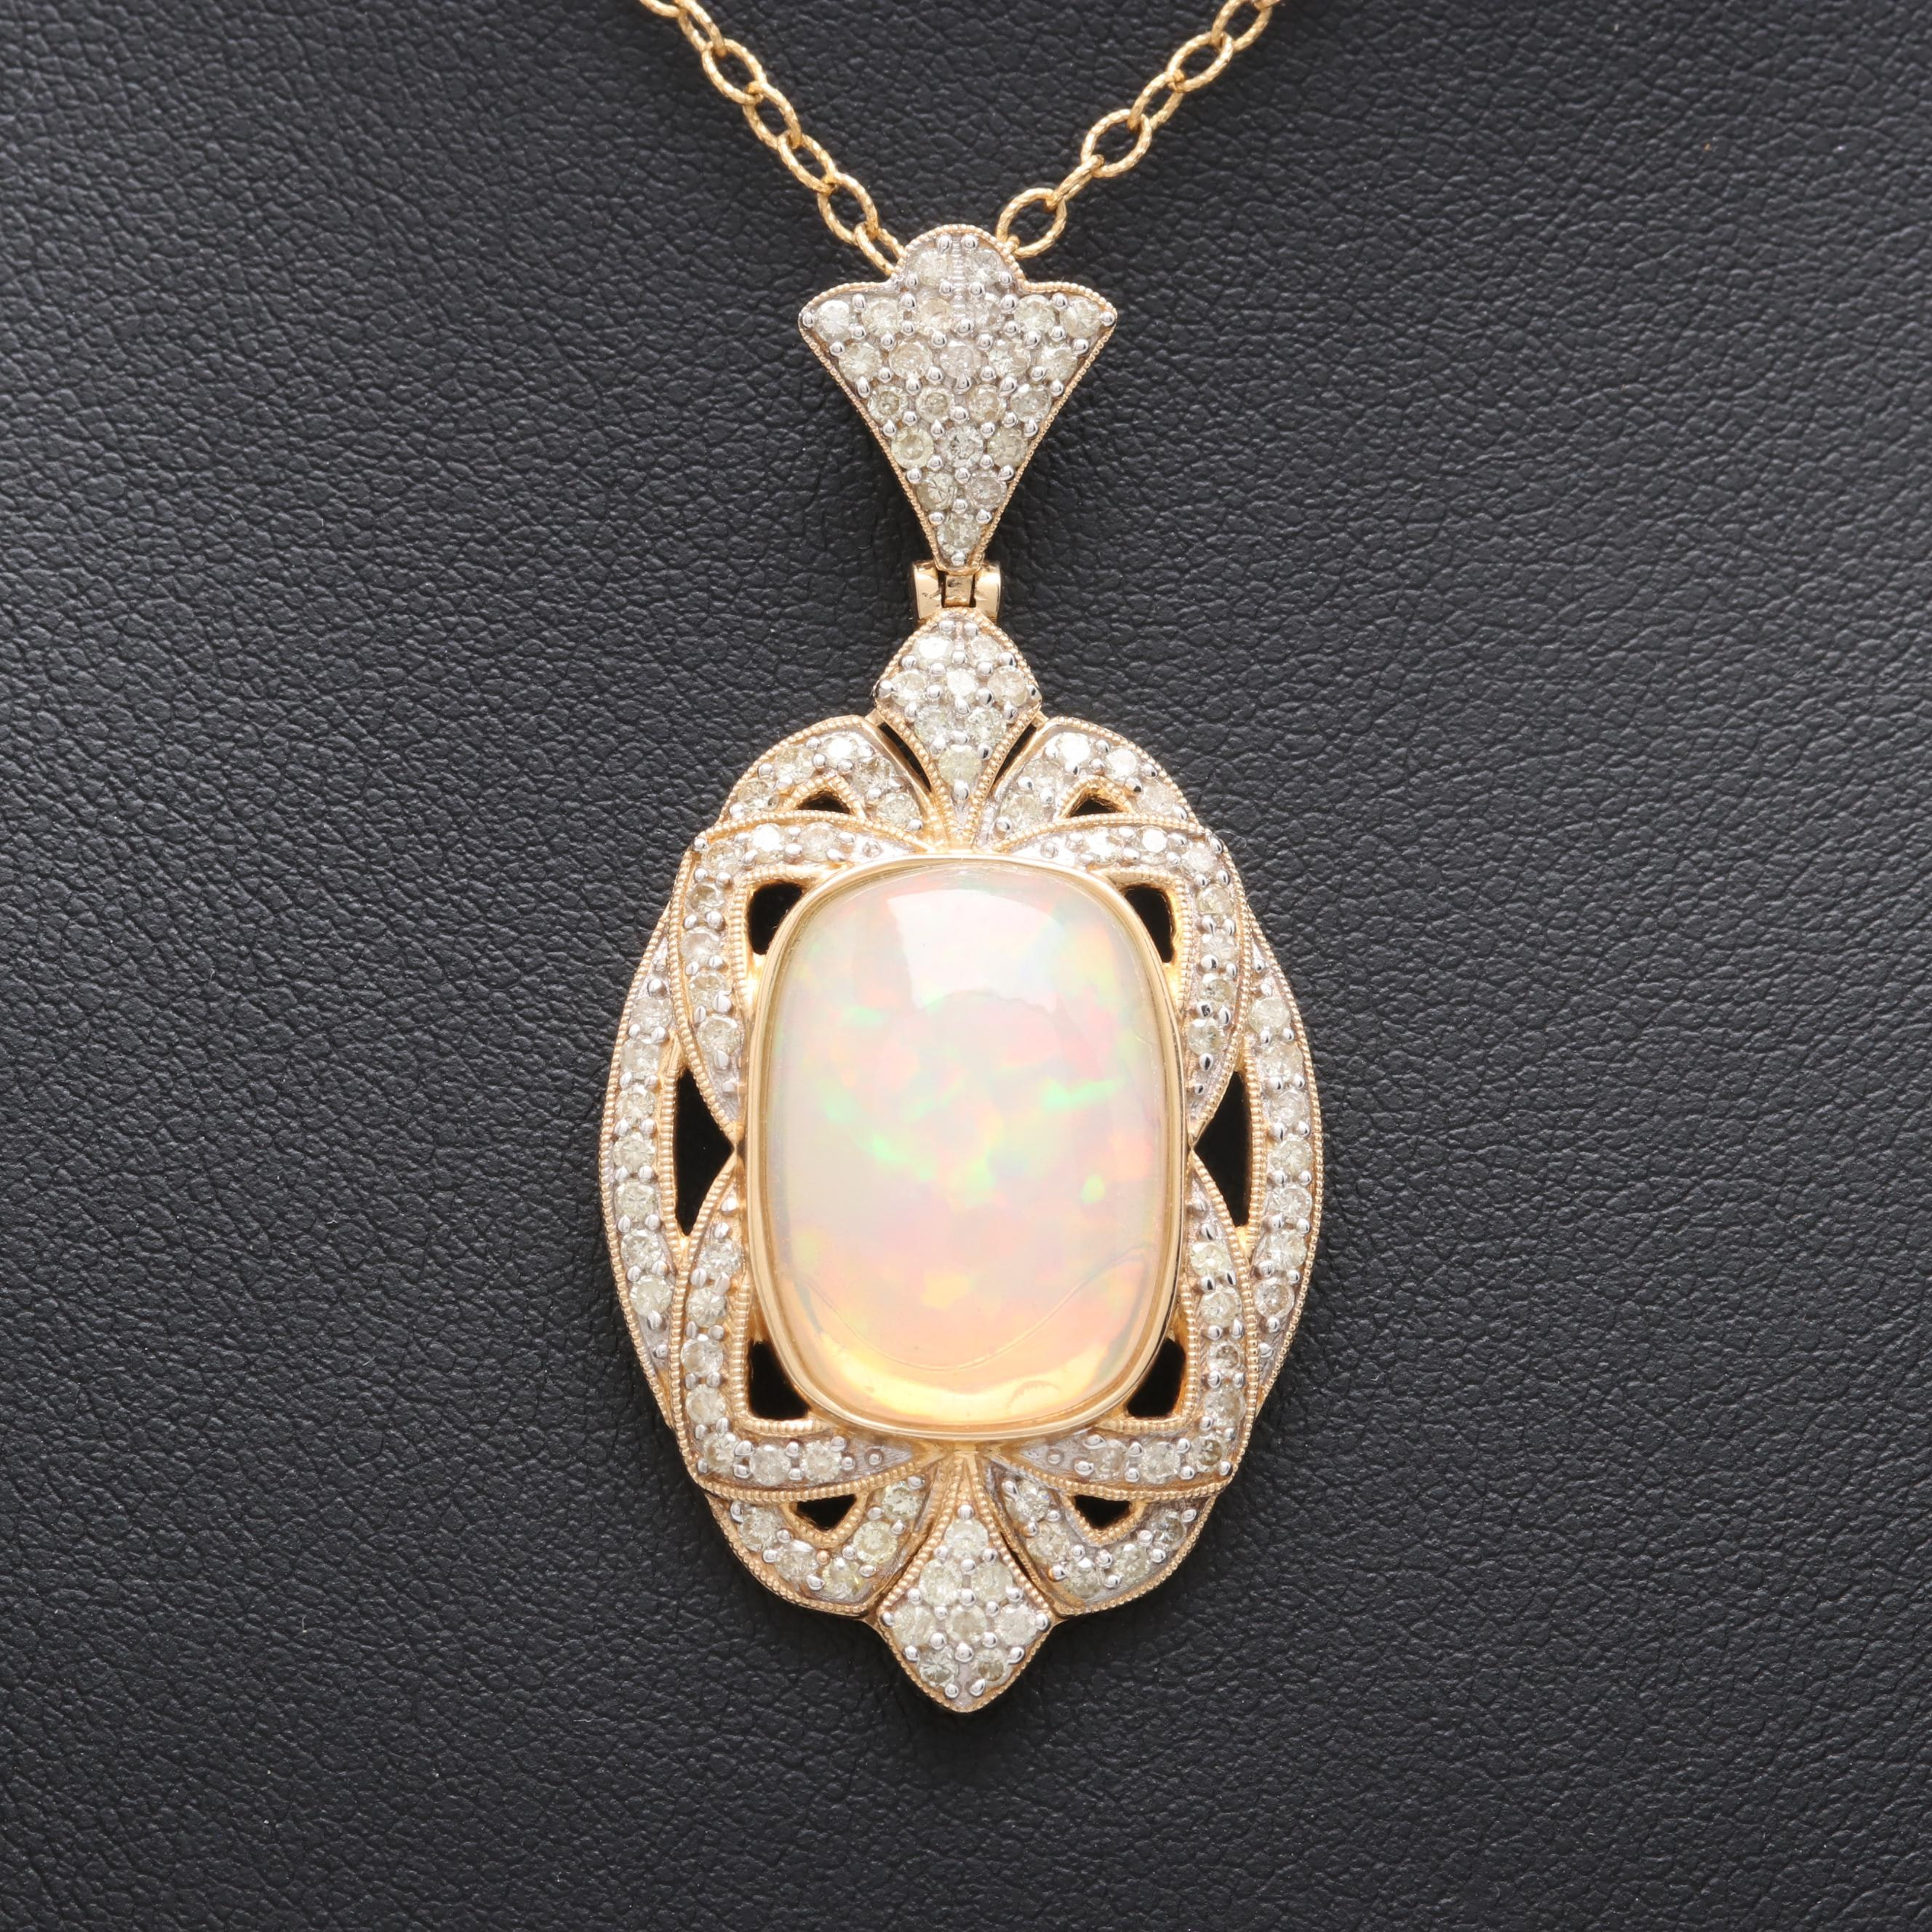 14K Yellow Gold 5.53 CT Opal and 1.01 CTW Diamond Necklace